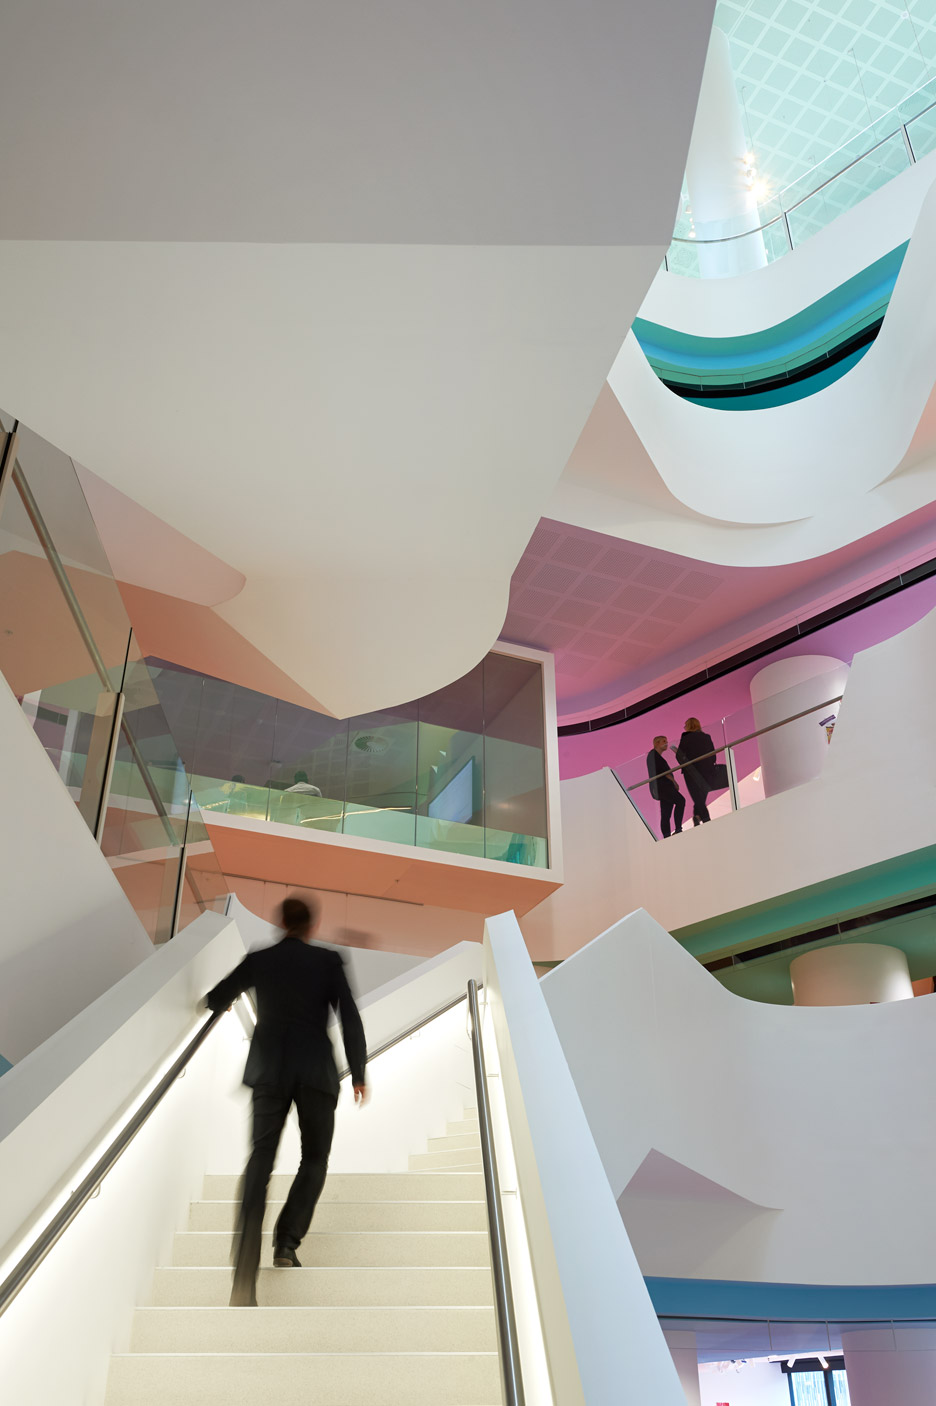 Medibank Workplace by Hassell